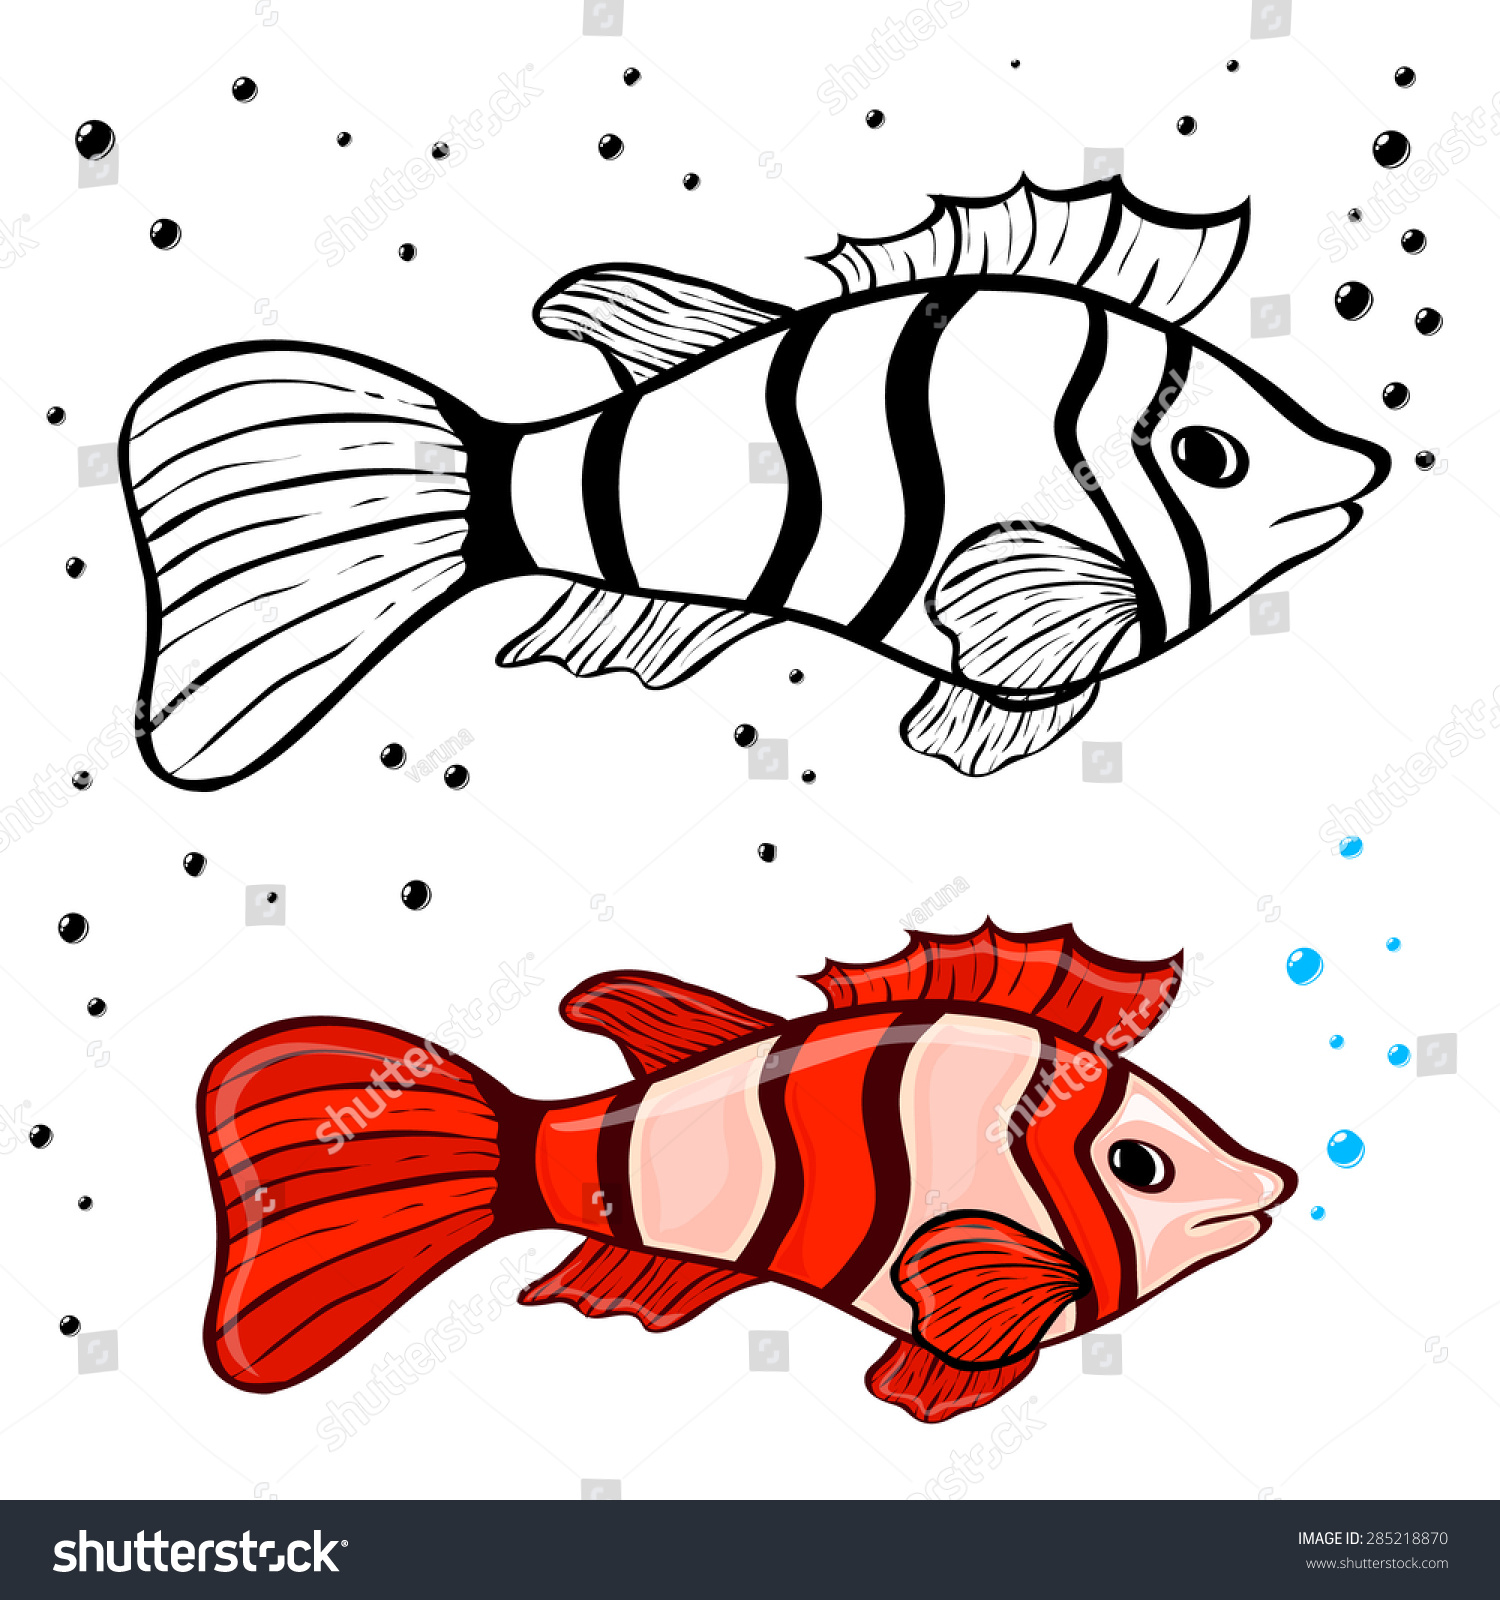 Fish Coloring Pages Kids Stock Vector HD (Royalty Free) 285218870 ...